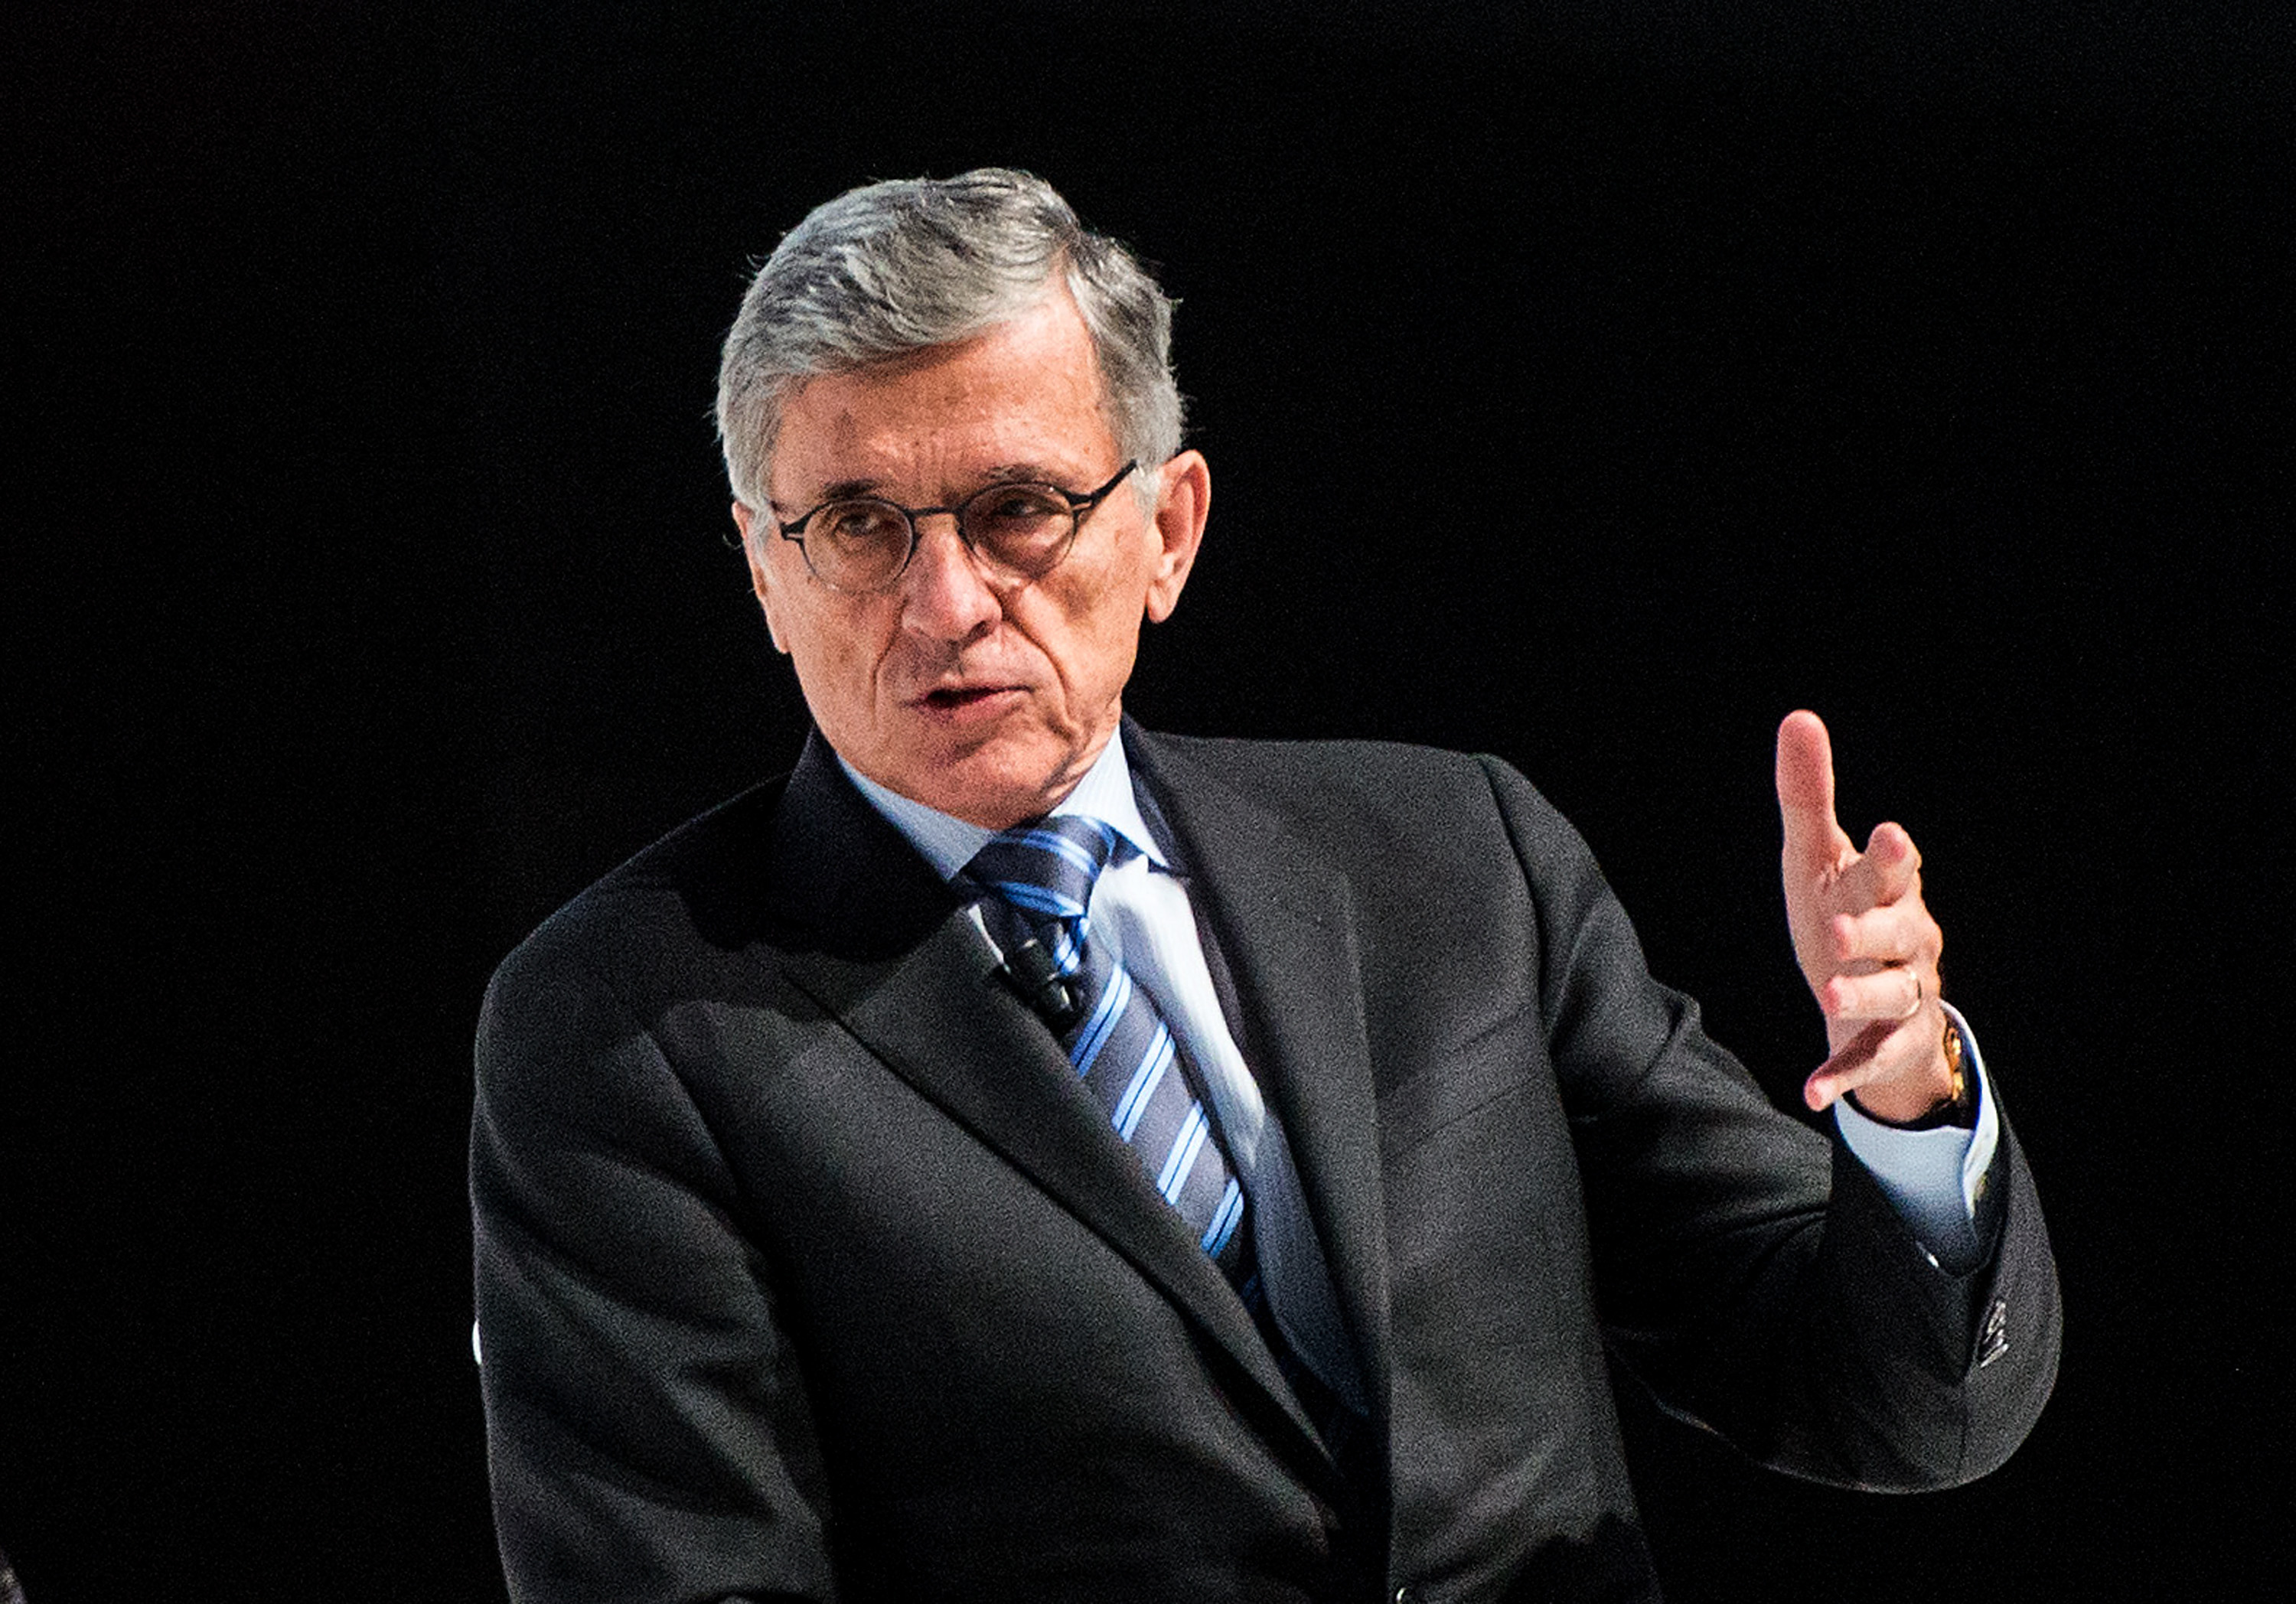 FCC Chairman Tom Wheeler speaks during his keynote conference during the second day of the Mobile World Congress 2015 at the Fira Gran Via complex on March 3, 2015 in Barcelona, Spain.